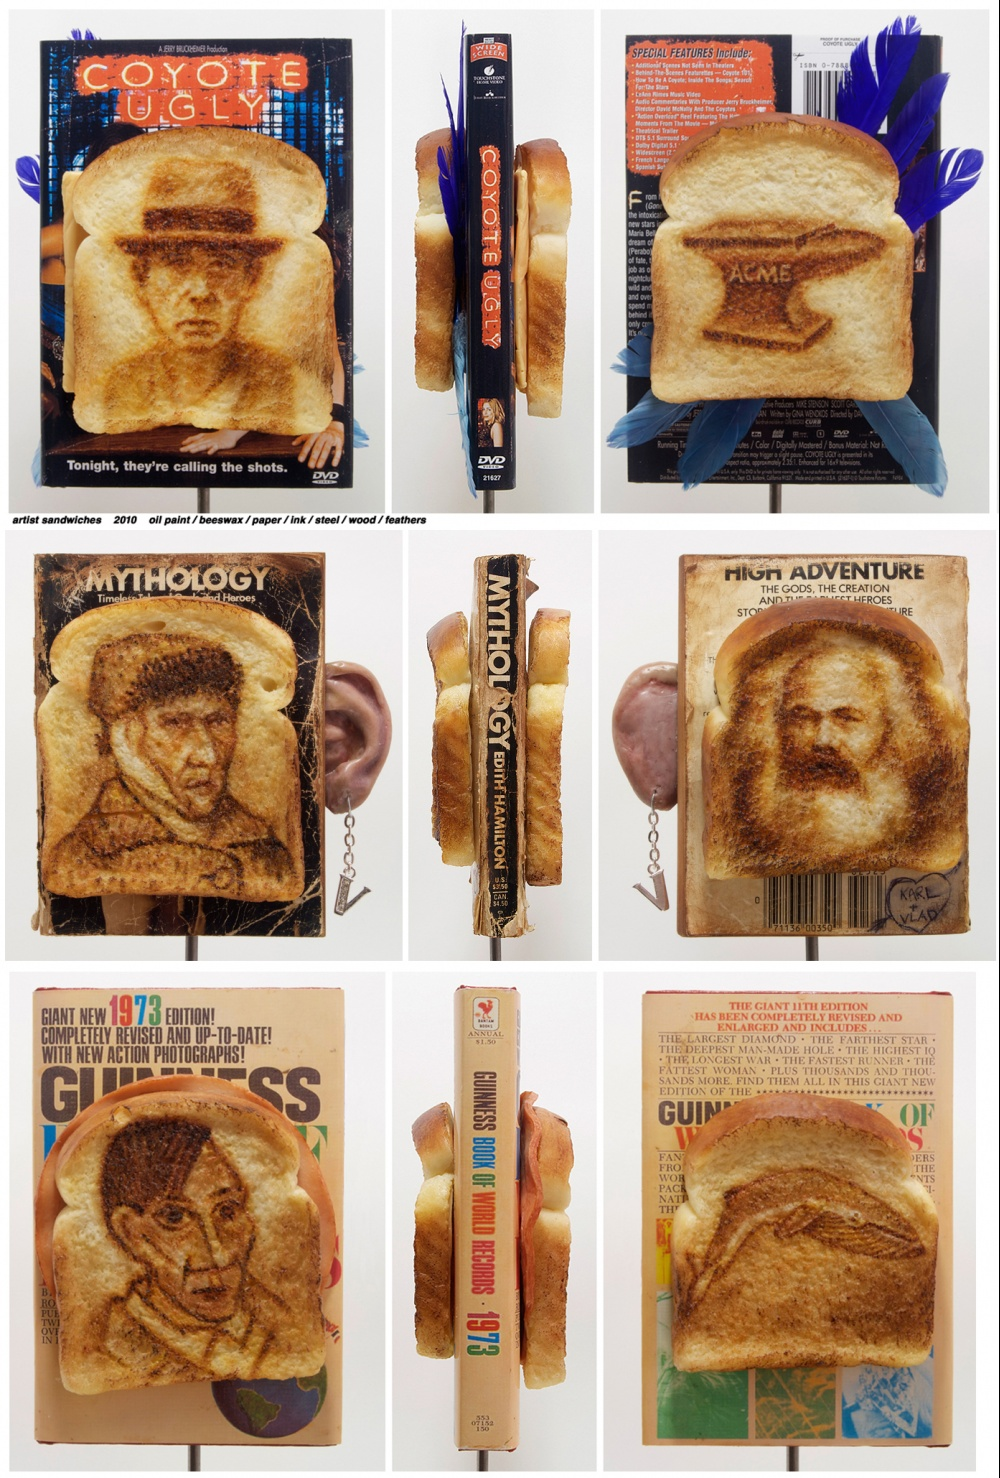 Artist Book Sandwiches (Beuys, van Gogh, Picasso)